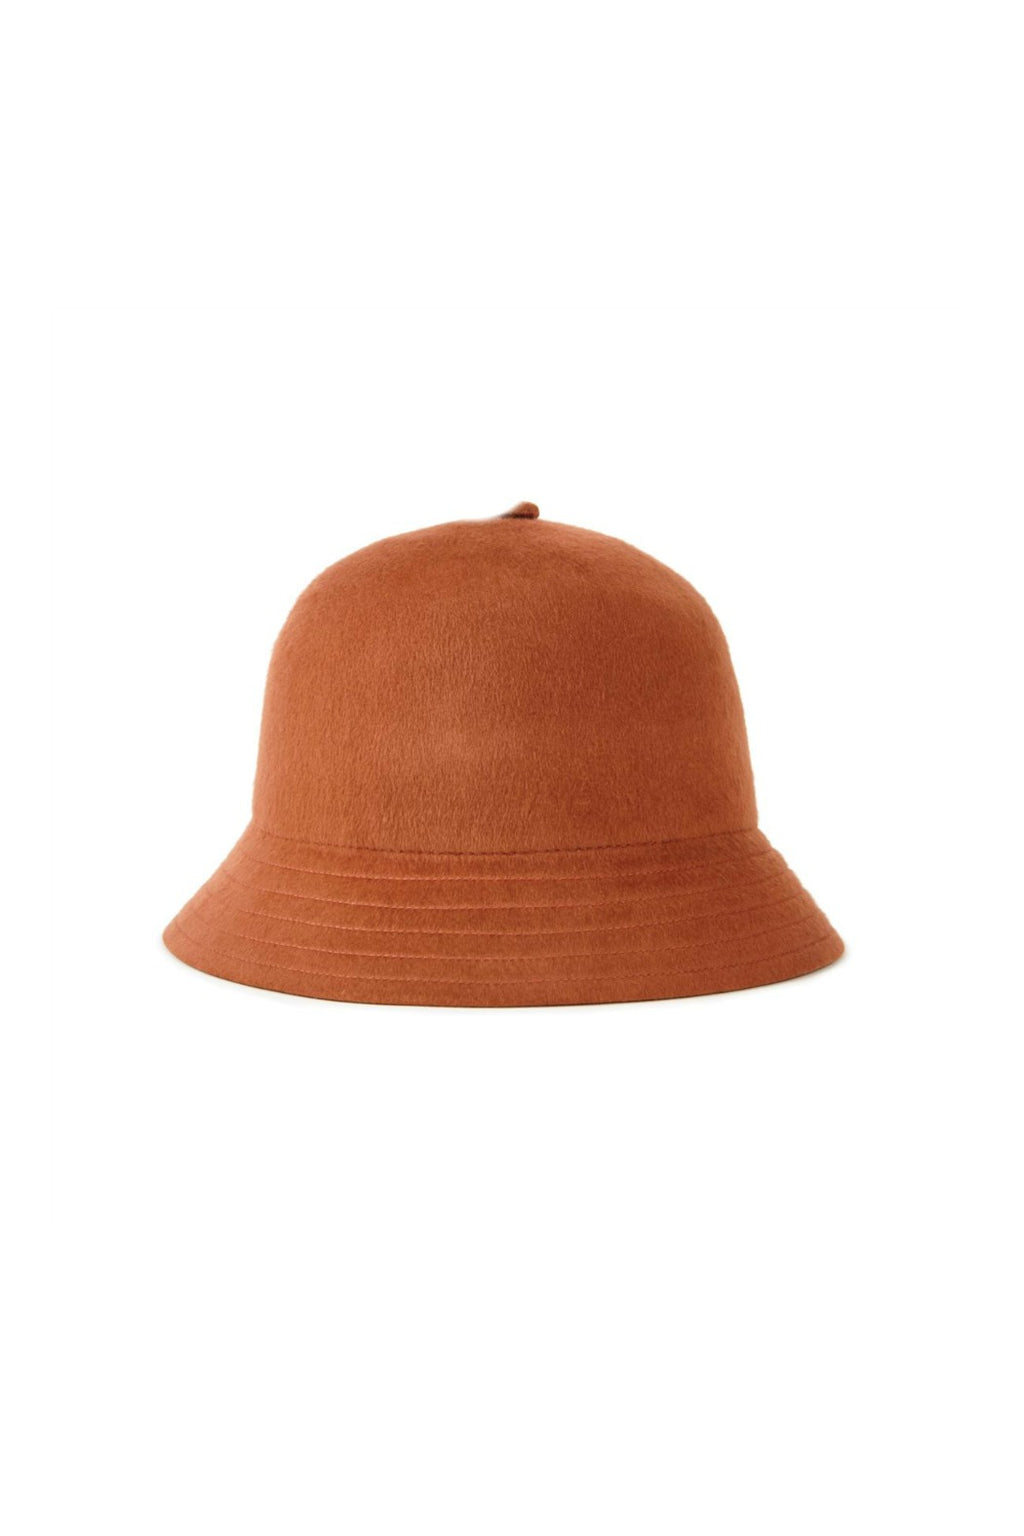 Brixton Essex Bucket Hat in Rust